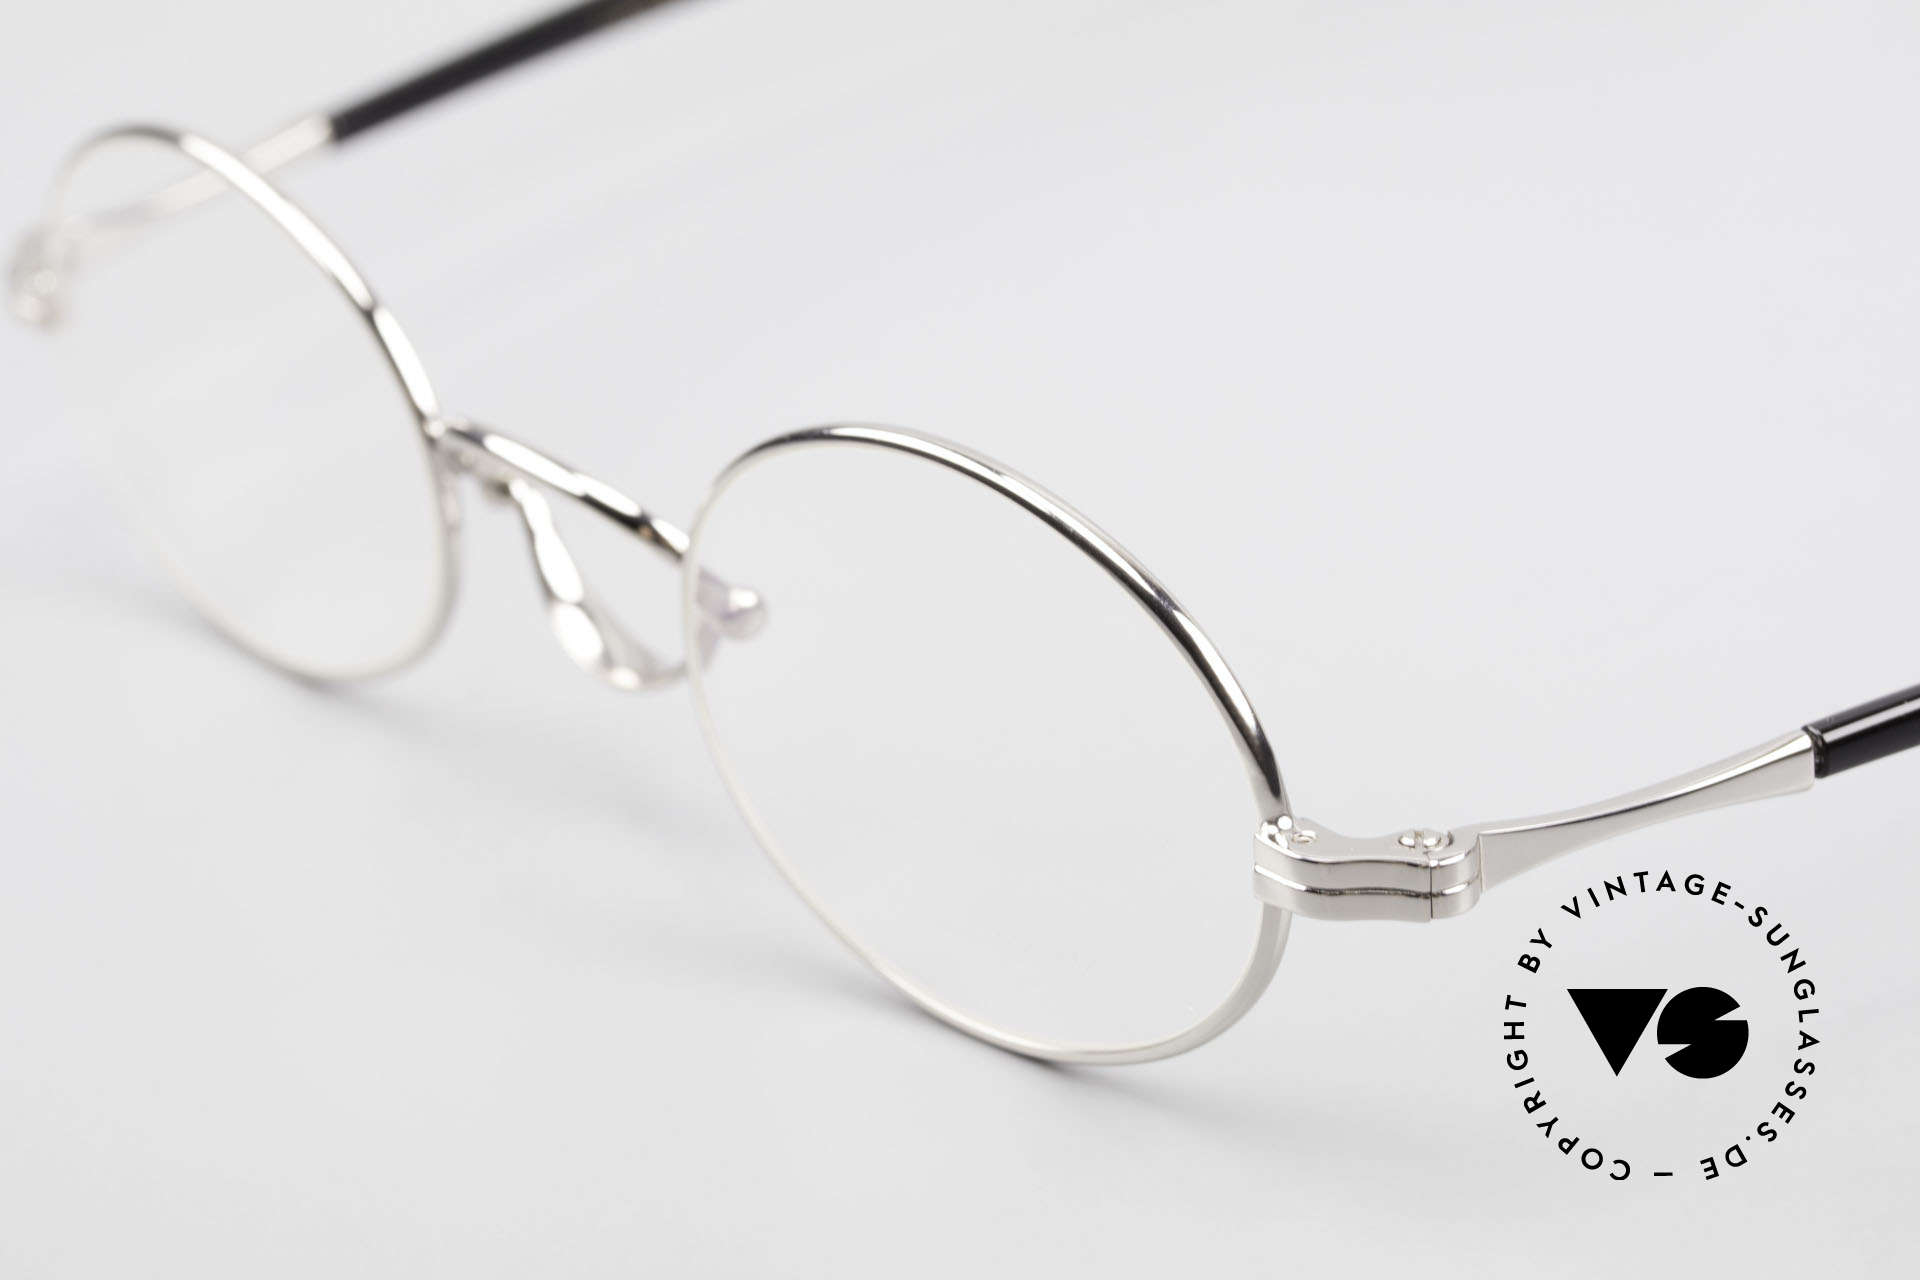 Lunor Swing A 33 Oval Swing Bridge Vintage Glasses, FRAME is PLATINUM-PLATED'; truly sophisticated specs, Made for Men and Women